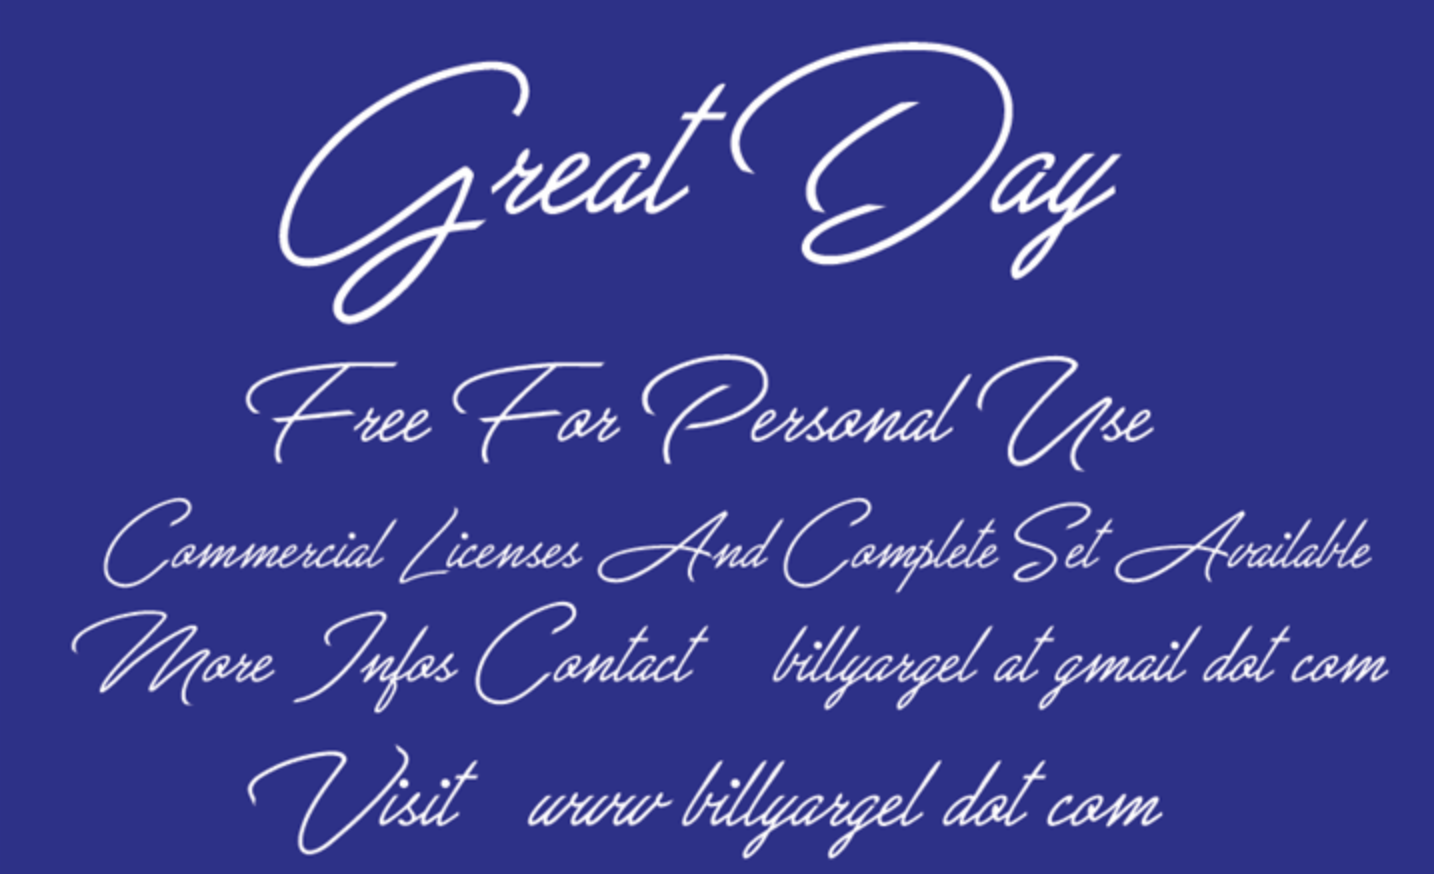 Retro calligraphy font called Great Day